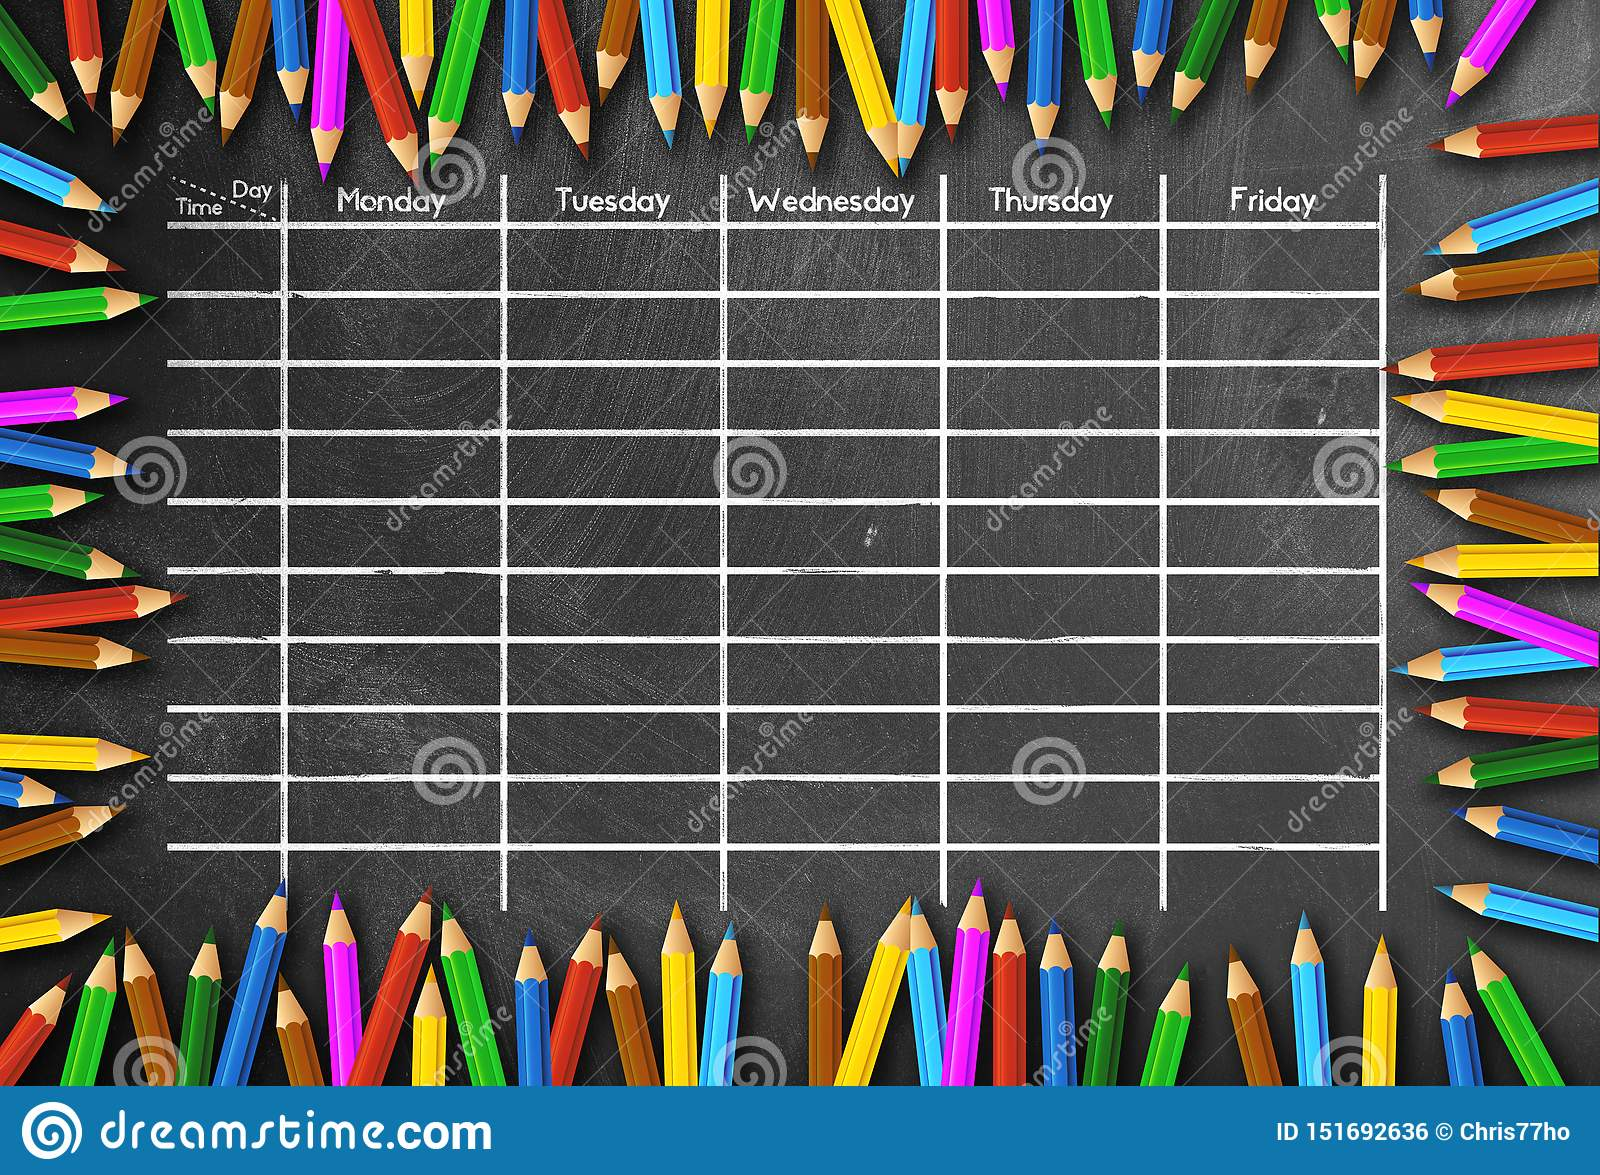 School timetable or class schedule template on chalkboard framed by colored pencils